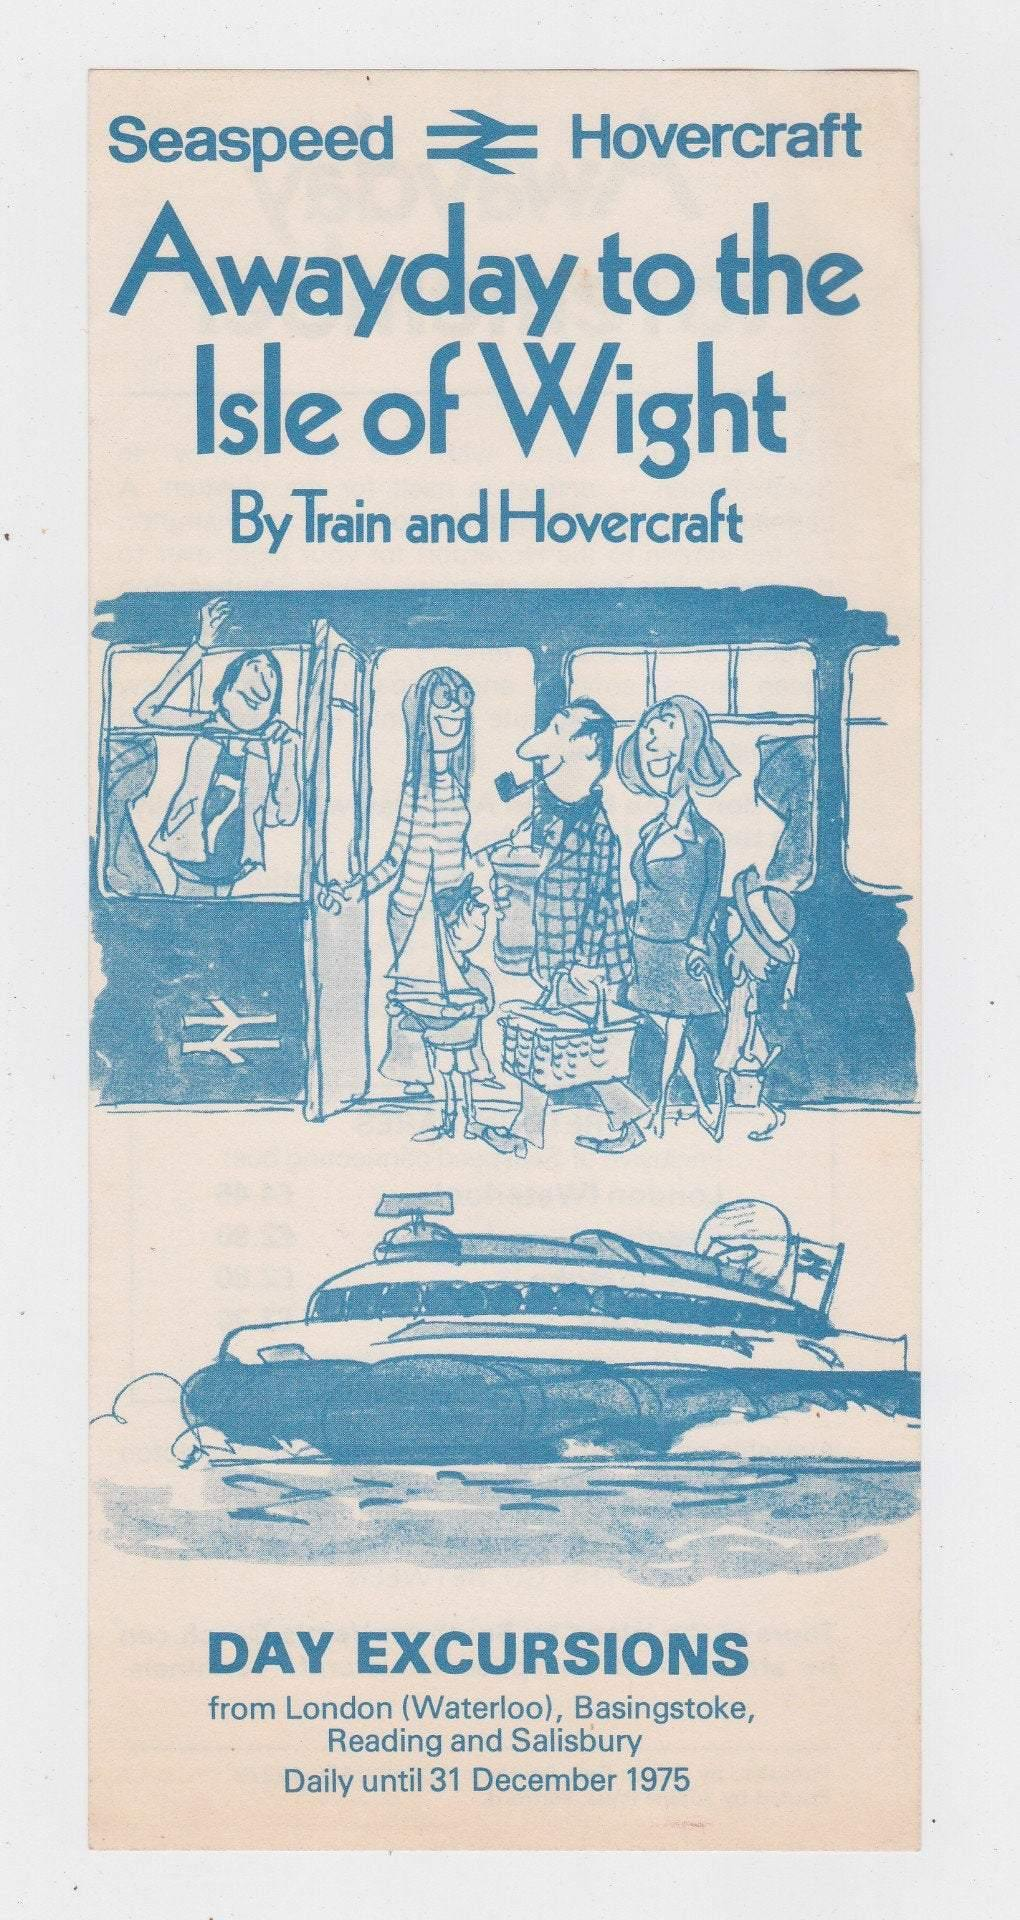 Seaspeed Hovercraft 1975 Isle of Wight Awayday Day Excursions British Rail Brochure